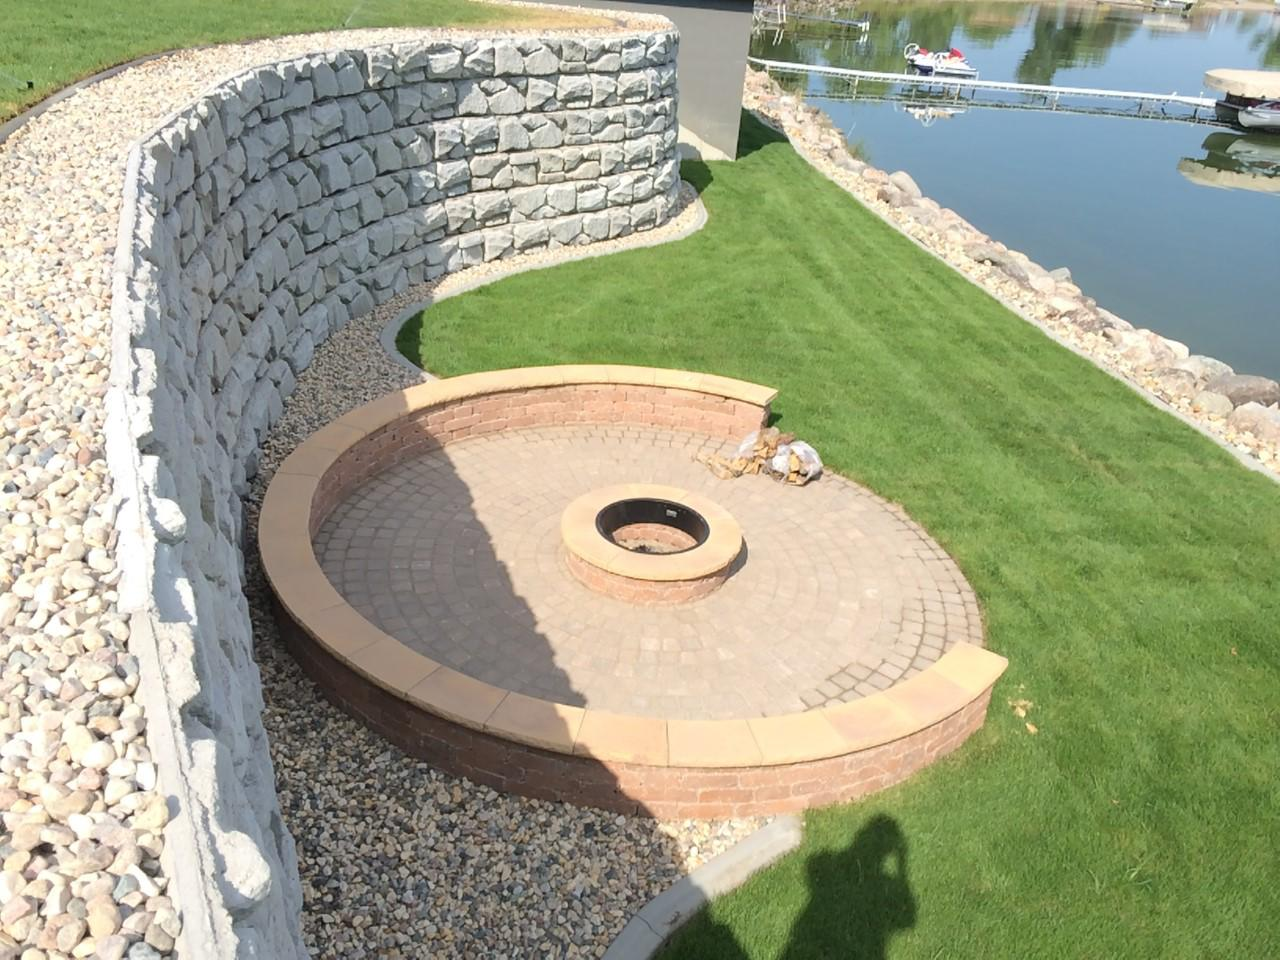 Our company has the professionals that are able to meet your every landscaping need.